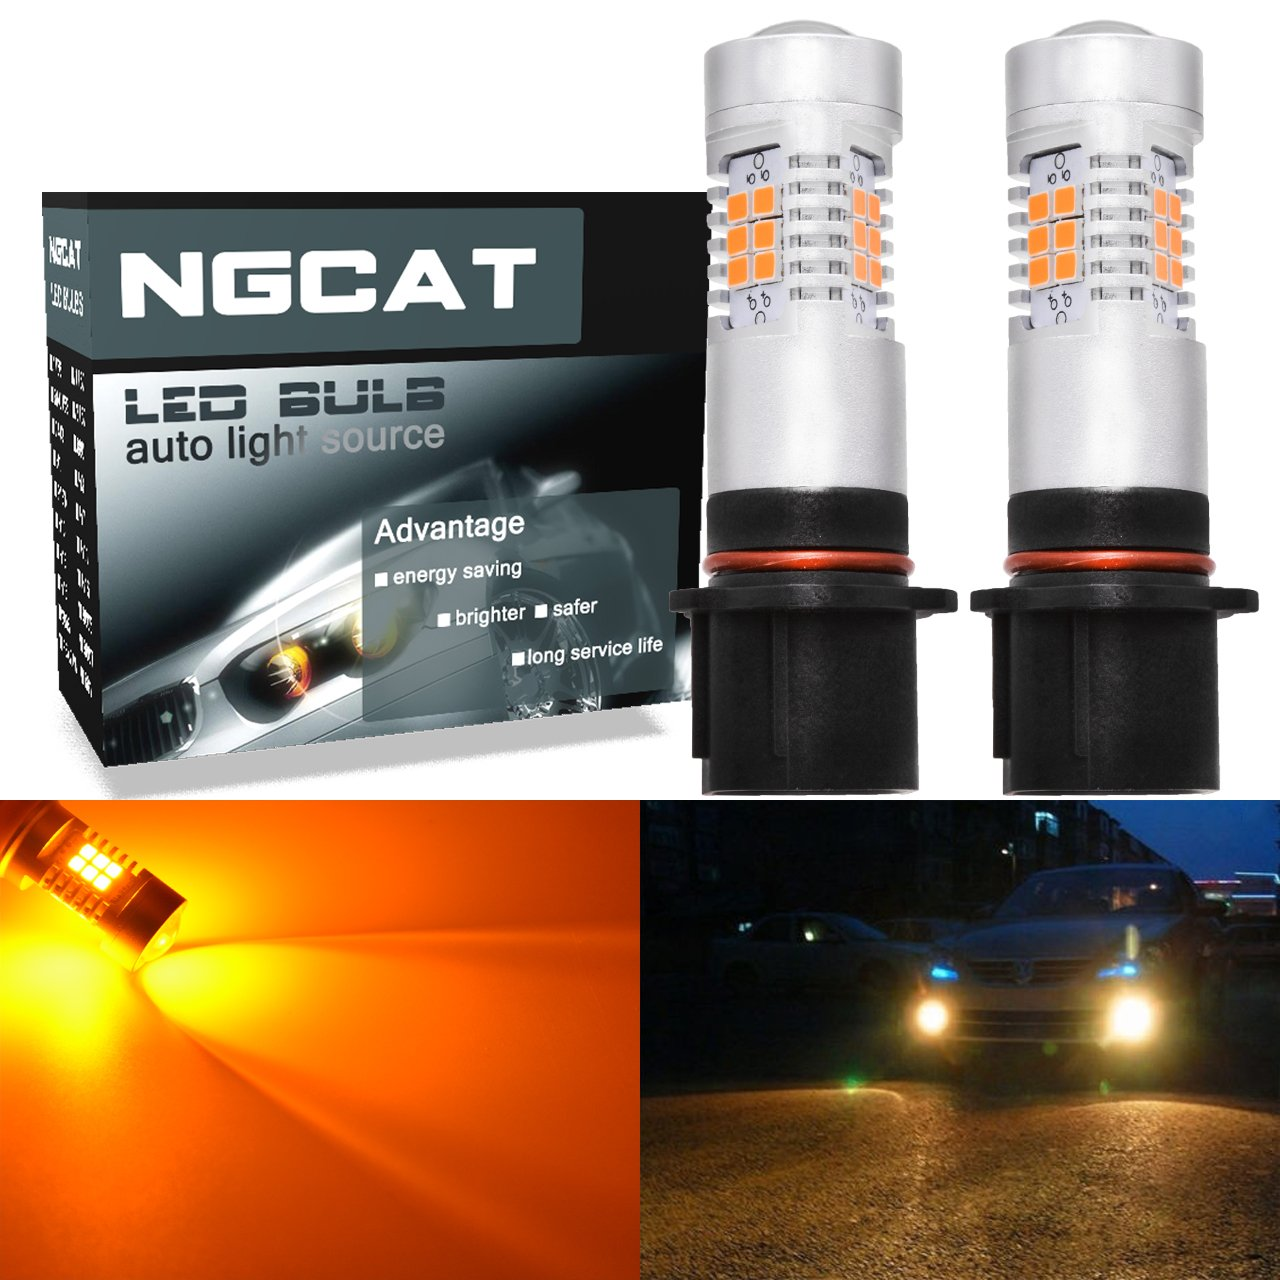 NGCAT Auto LED Bulb 2PCS PSX26W DRL Fog Light Replacement 2835 21 SMD Chipsets car Driving Daytime Running Lights, Amber 10-16V 10.5W